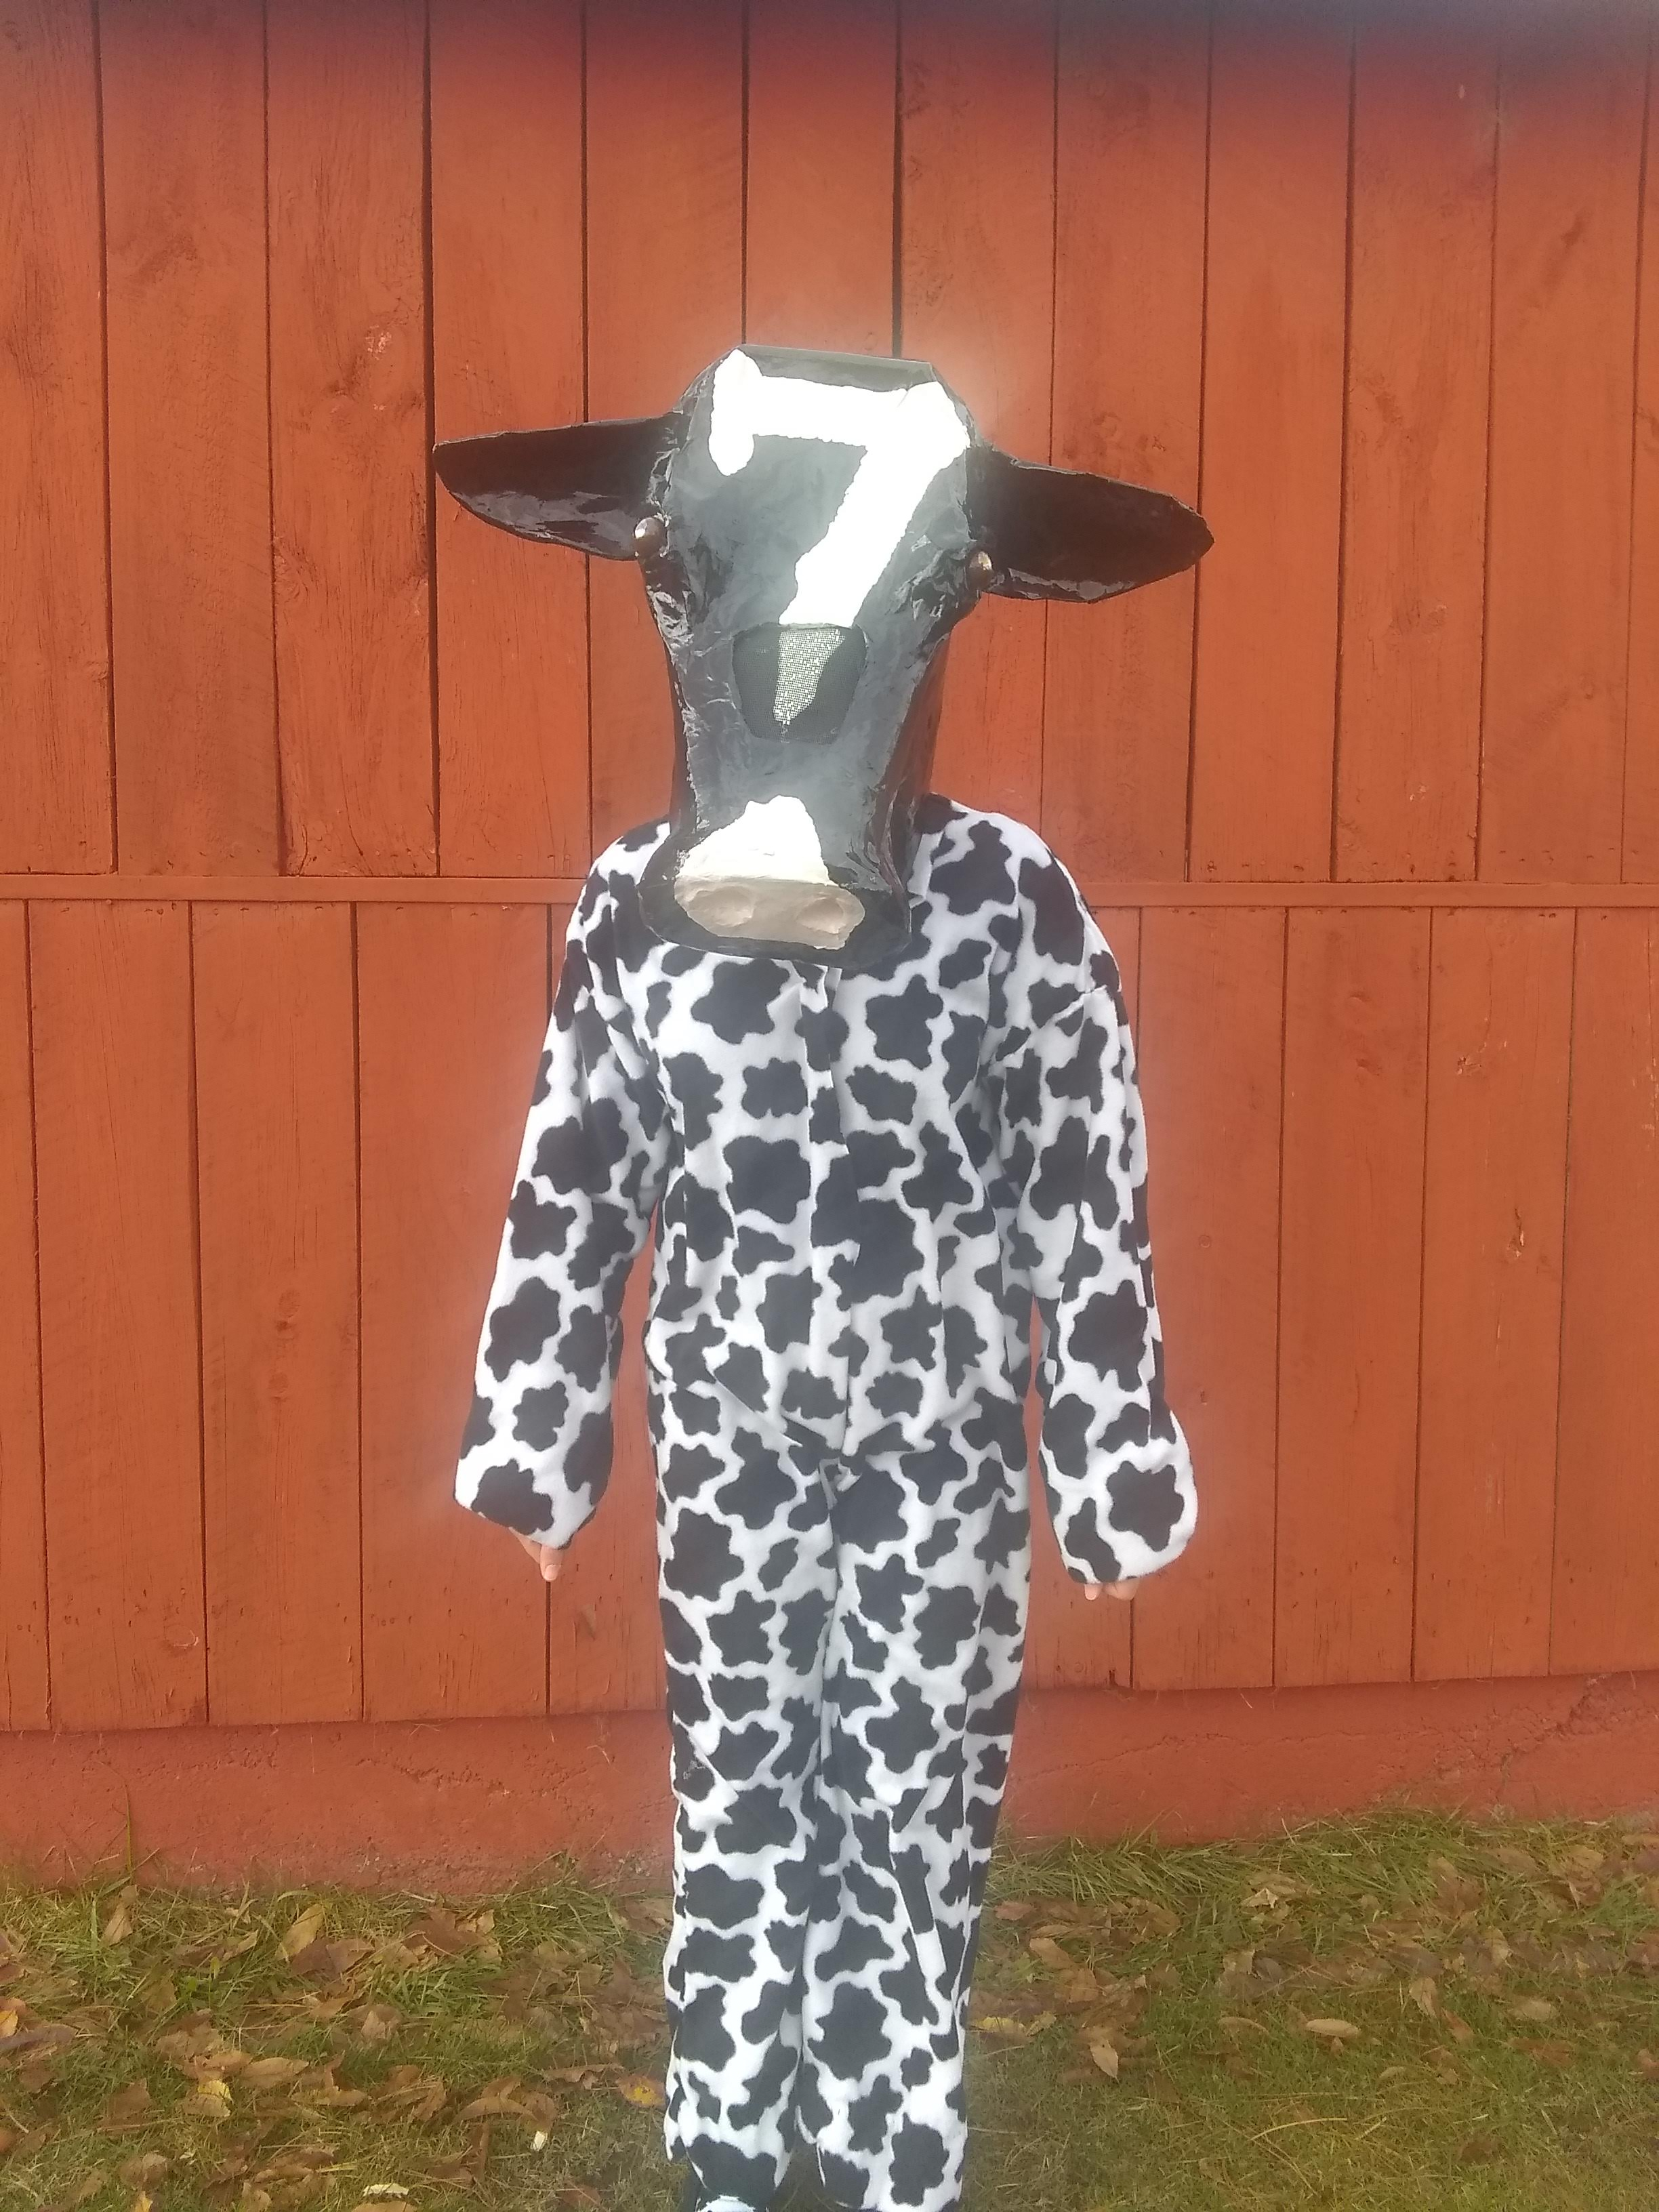 This is a replica of my cow that had a 7 on her forehead.